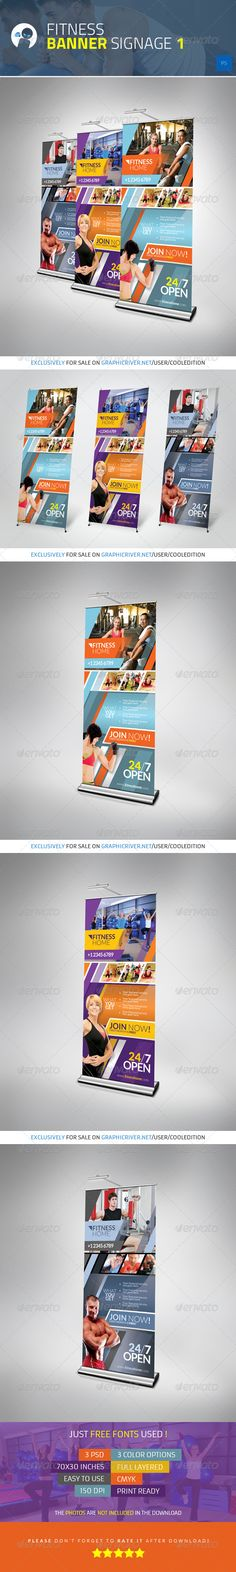 Fitness Banner Signage 1 — Photoshop PSD #modern #fitness • Available here → https://graphicriver.net/item/fitness-banner-signage-1/4136446?ref=pxcr